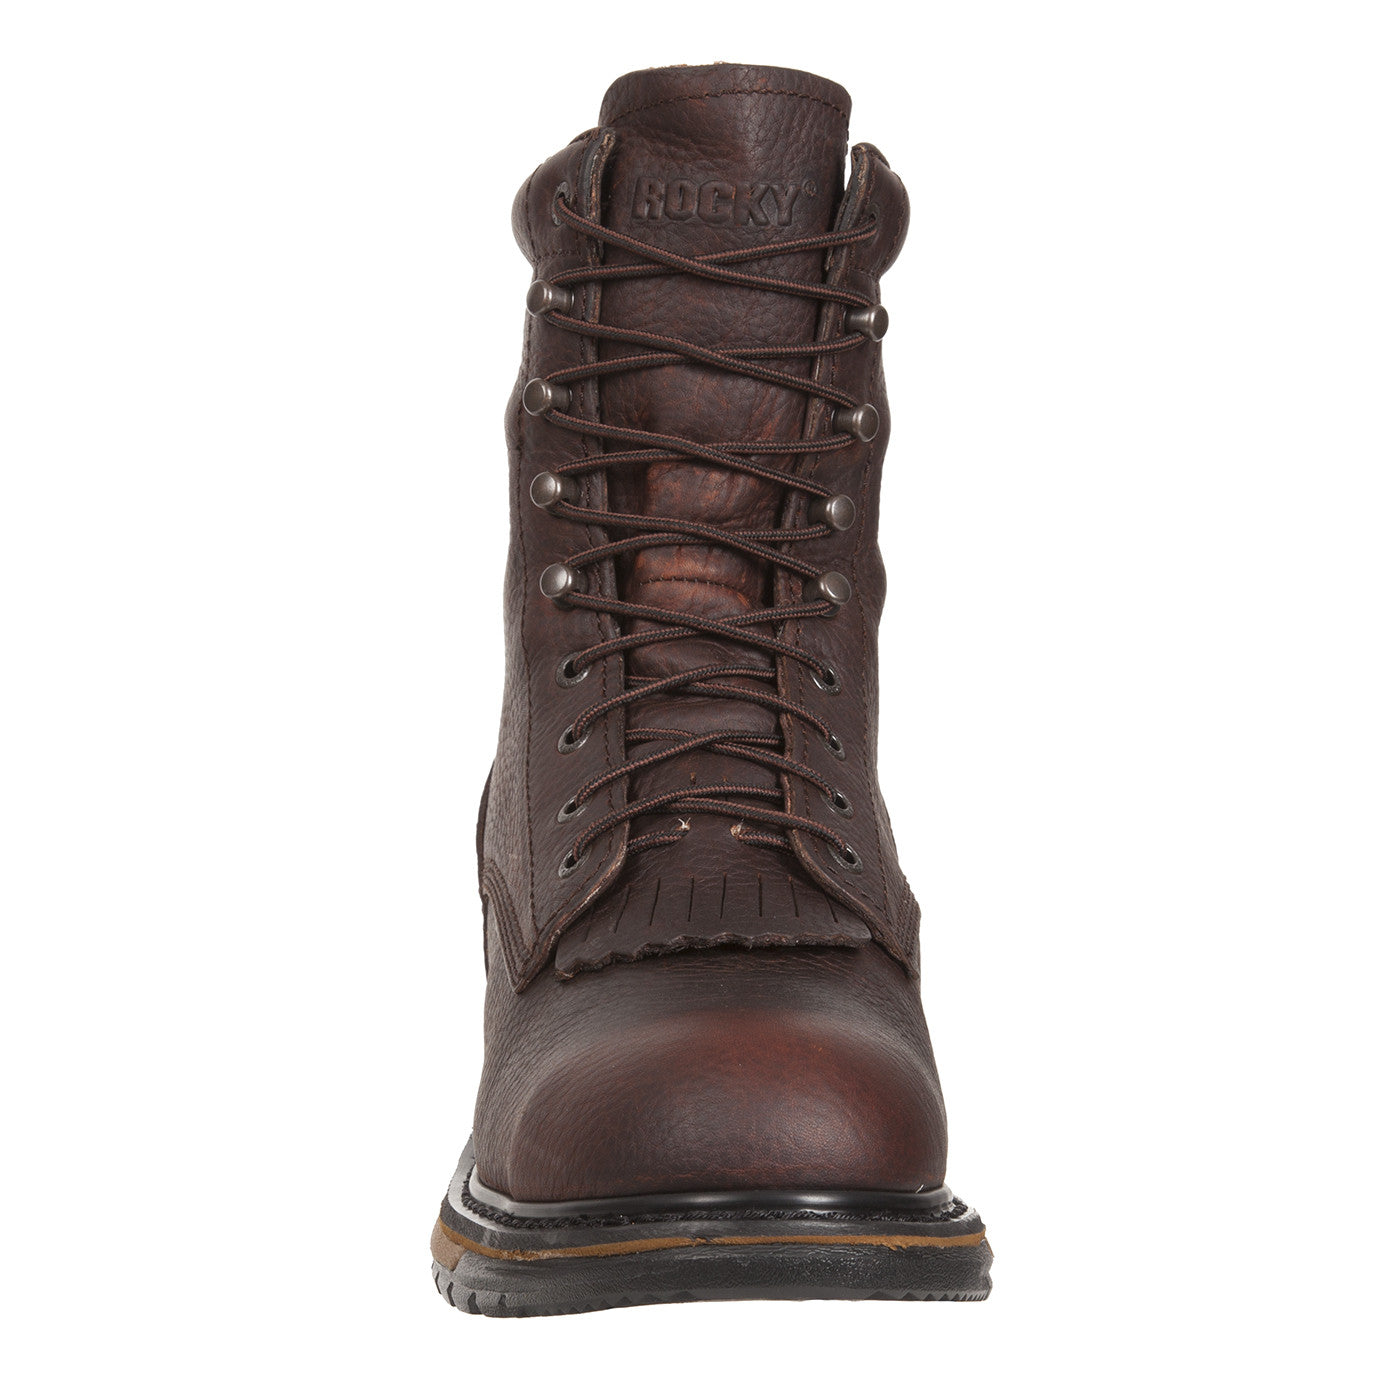 Rocky Original Ride Steel Toe Waterproof Lacer Western Boot - VaqueroBoots.com - 2